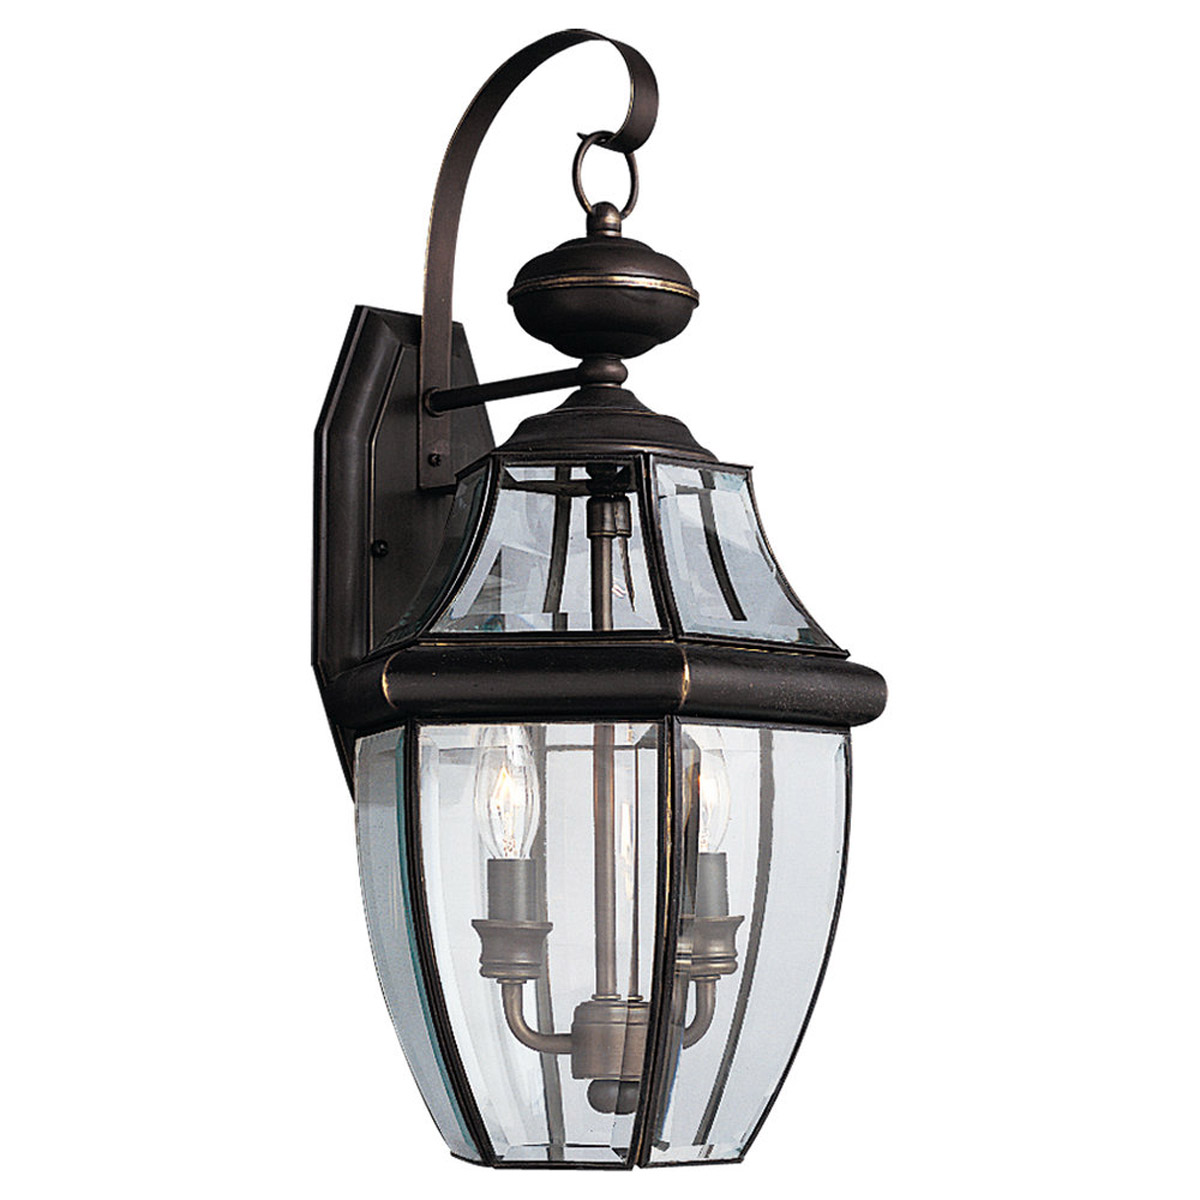 Sea Gull Lighting Lancaster 2 Light Outdoor Wall Lantern in Antique Bronze 8039-71 photo